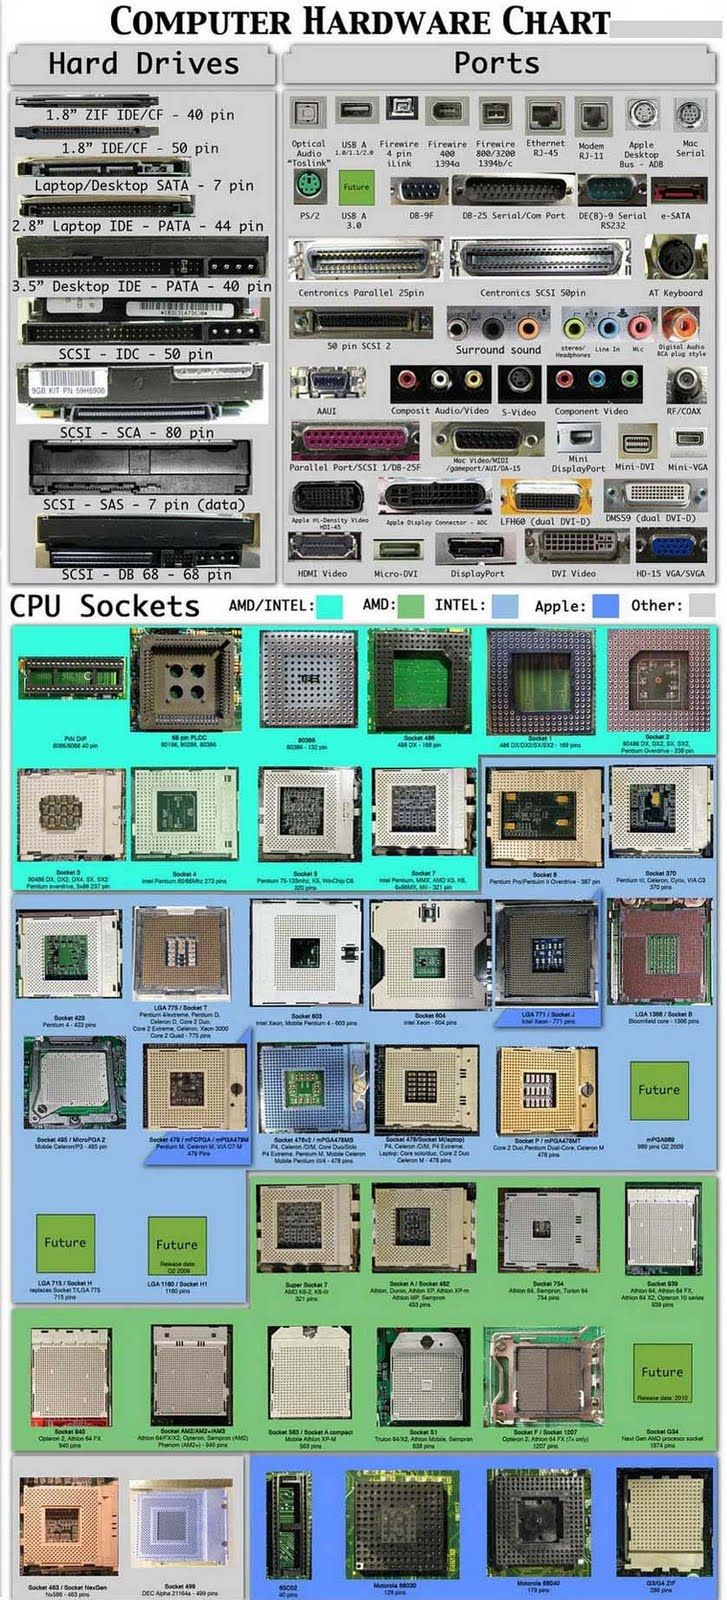 70 best Computer Hardware/Components images on Pinterest | Computers ...